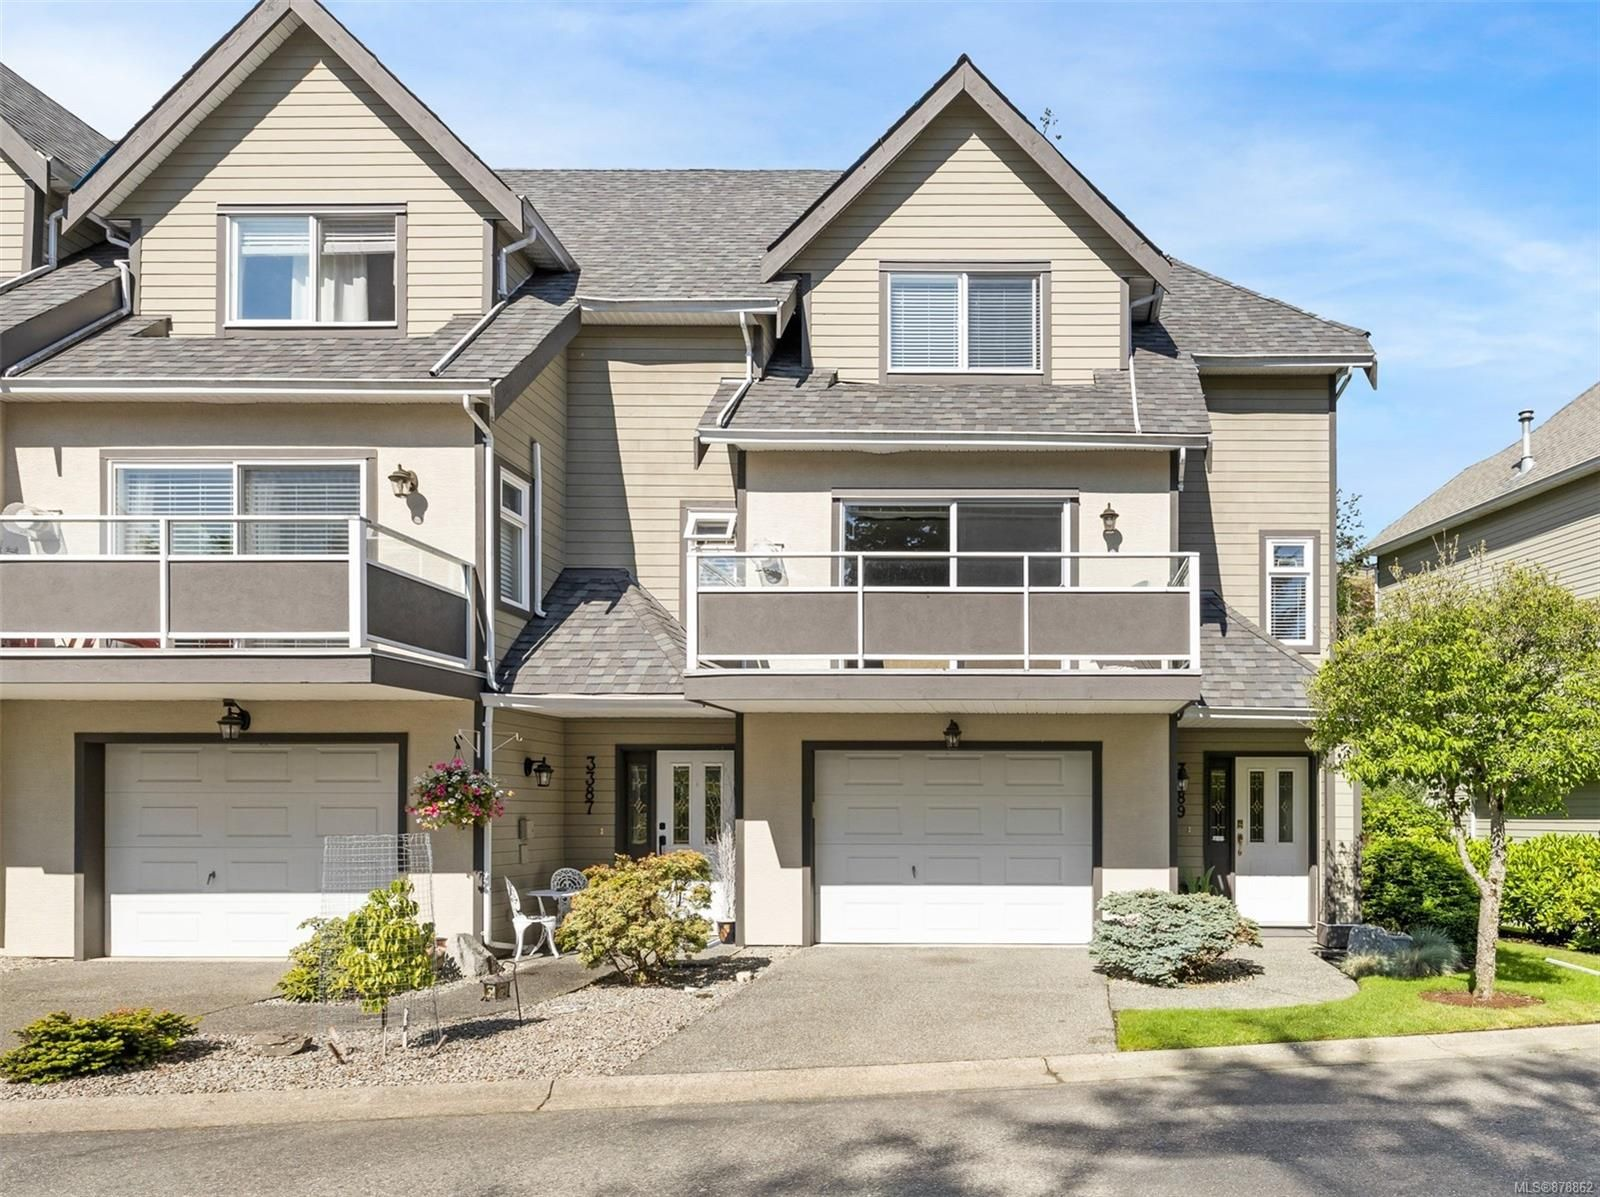 Main Photo: 3389 Mariposa Dr in : Na Departure Bay Row/Townhouse for sale (Nanaimo)  : MLS®# 878862